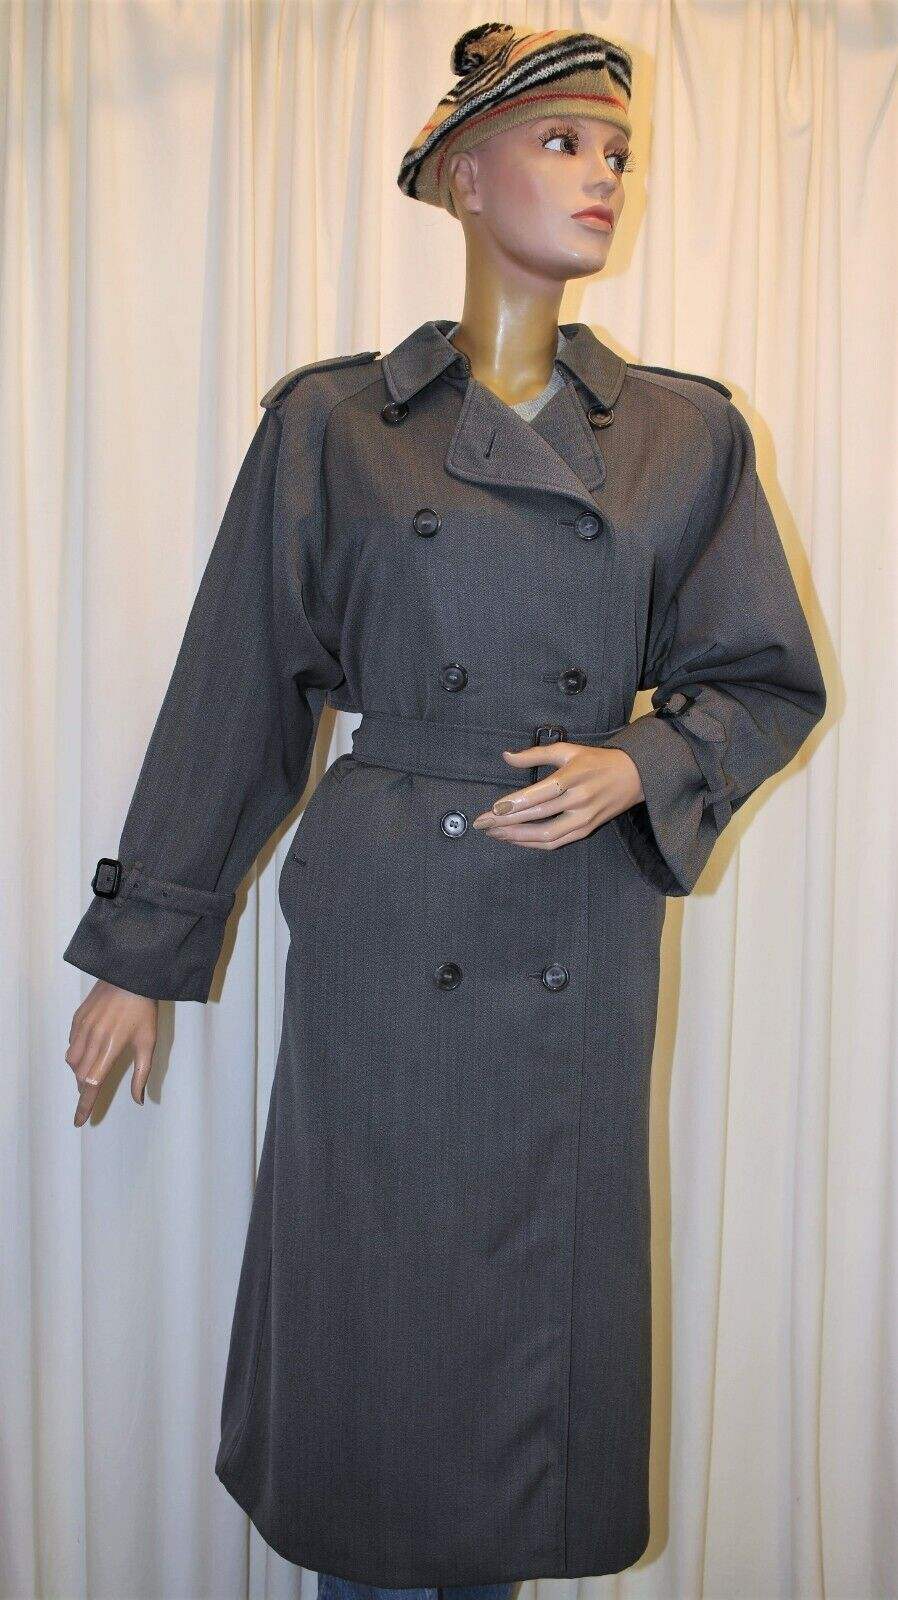 Trench imperméable burberry's vintage 80's gris taille 10l 38fr made in england